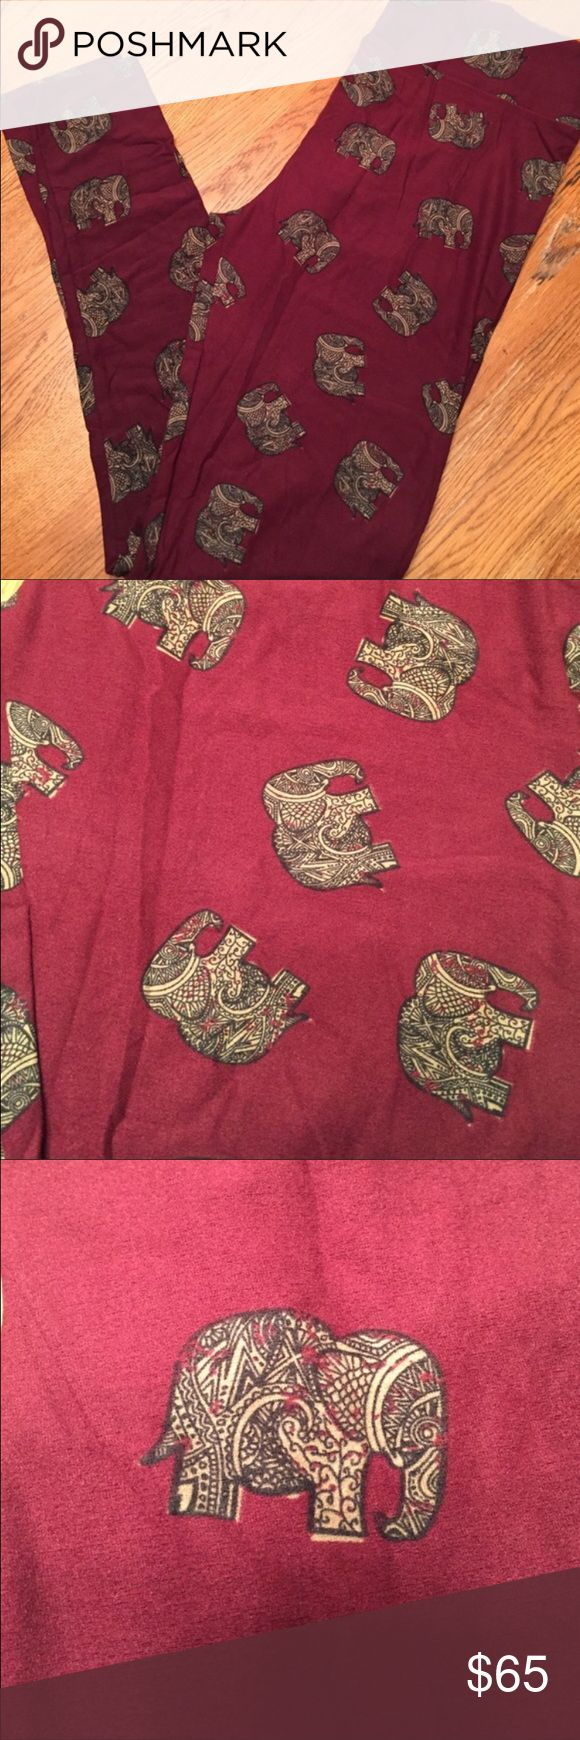 LuLaRoe OS MOSAIC ELEPHANTS leggings Brand new with tag. OS one size (fits most 2-10) mosaic elephant leggings. Never tried on or worn. rare, hard to find unicorn print. *I am NOT a LuLaRoe consultant. Just an addict who loves to hunt for great prints.* LuLaRoe Pants Leggings